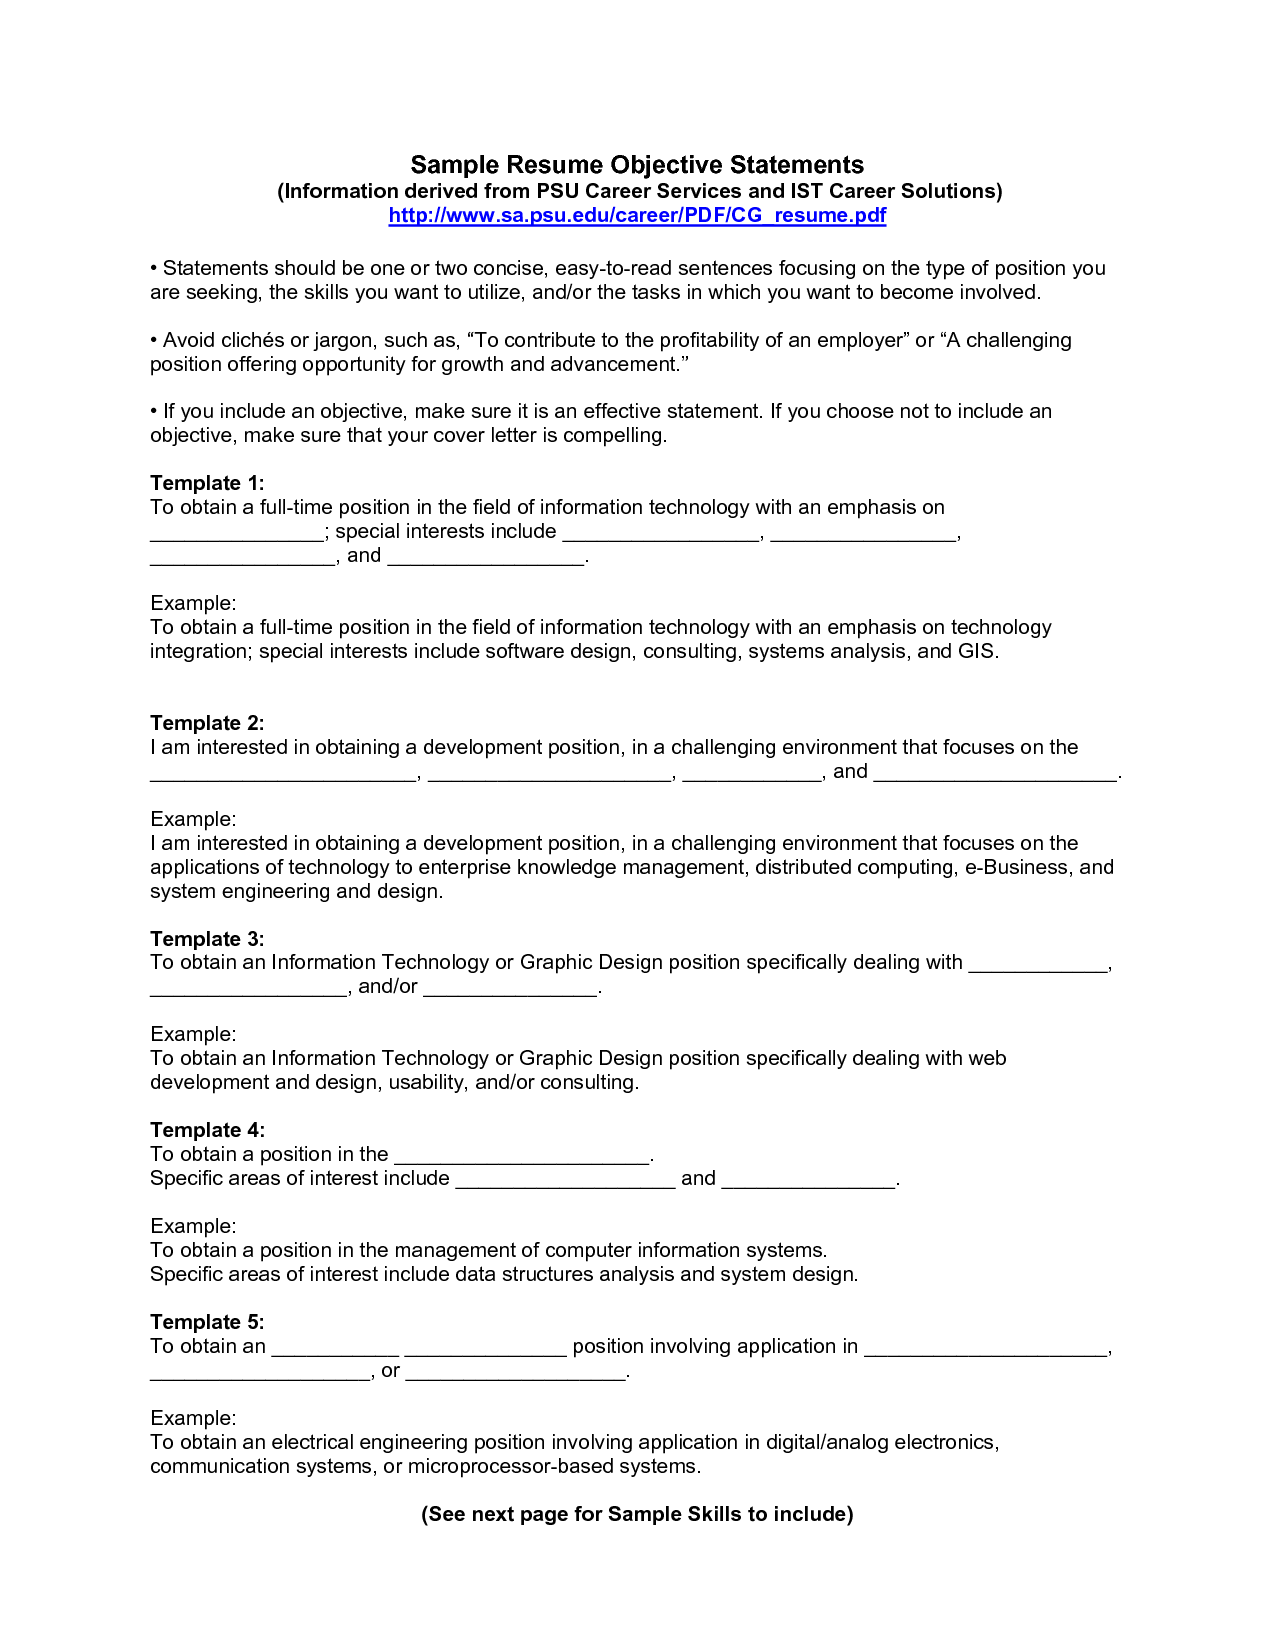 Excellent Objective Statement For Resume 10 Sample Resume Objective Statements